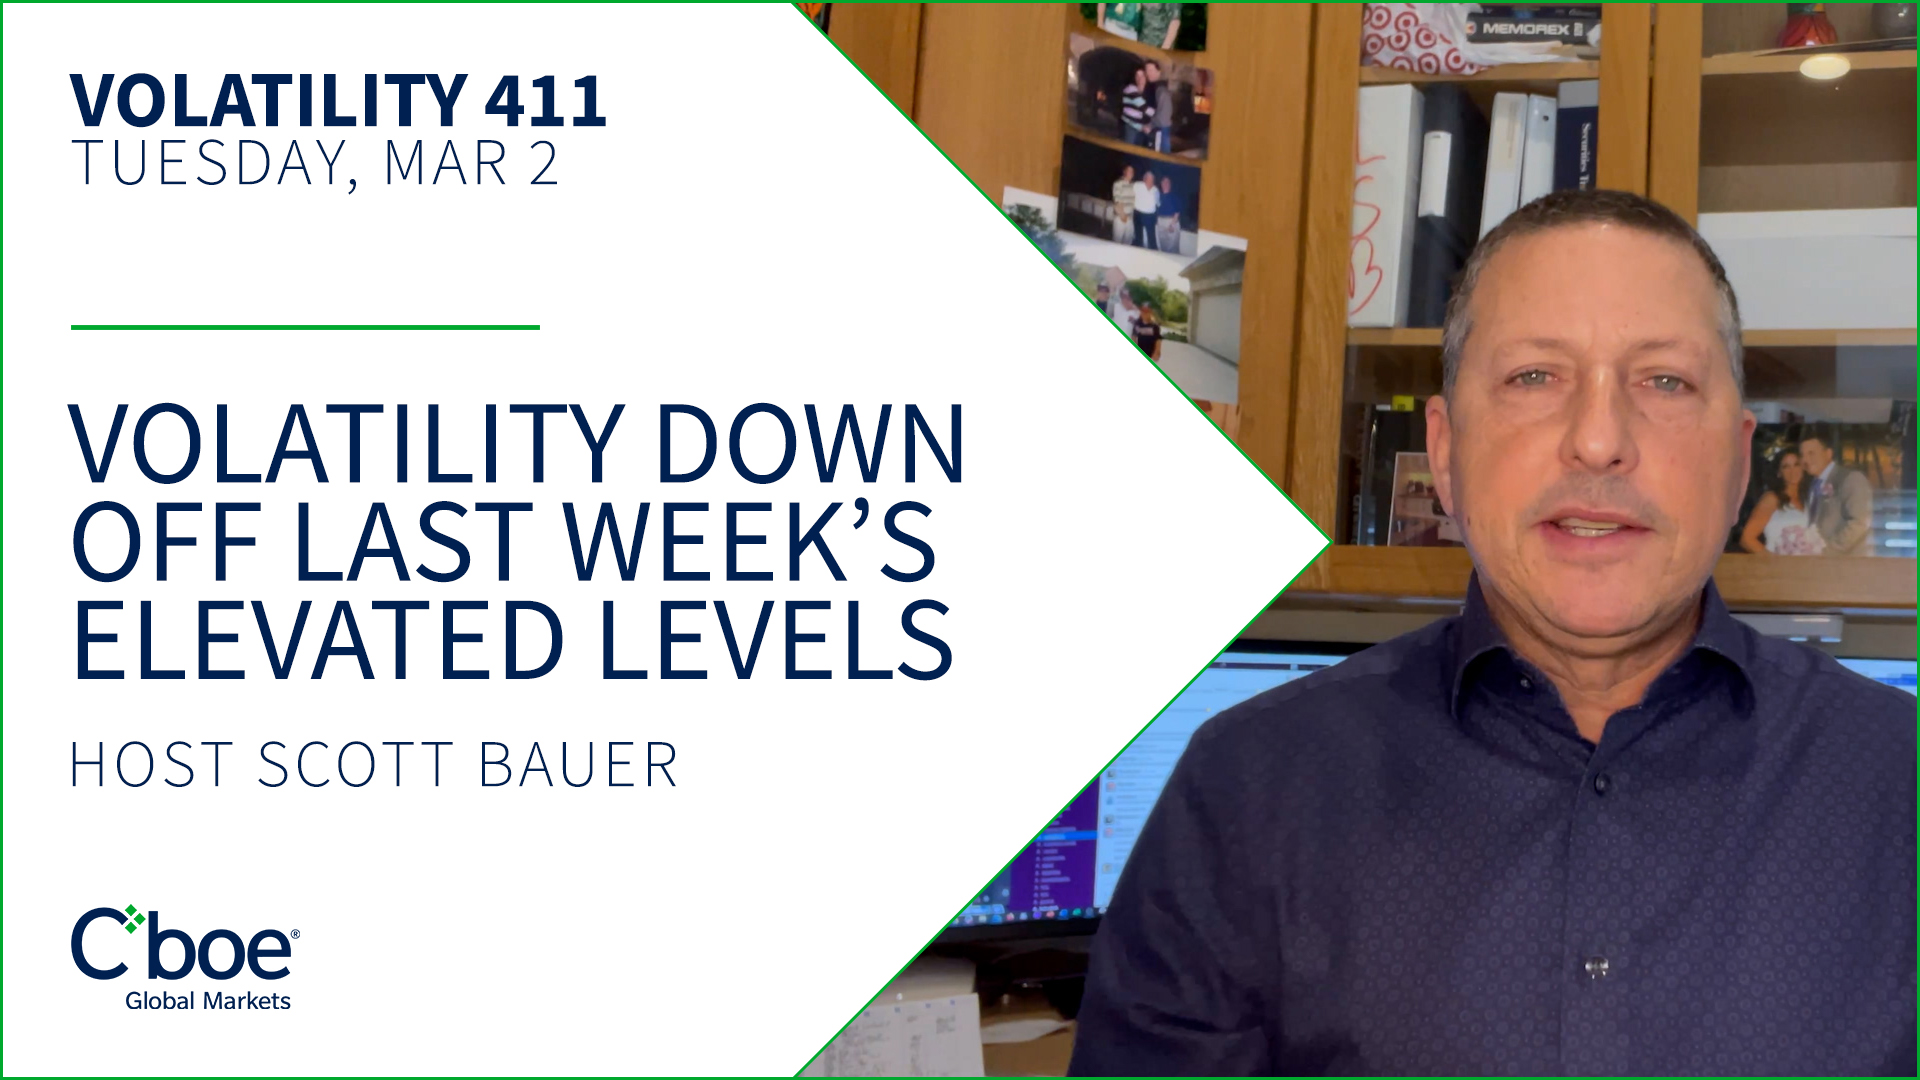 Volatility Down Off Last Week's Elevated Levels Thumbnail